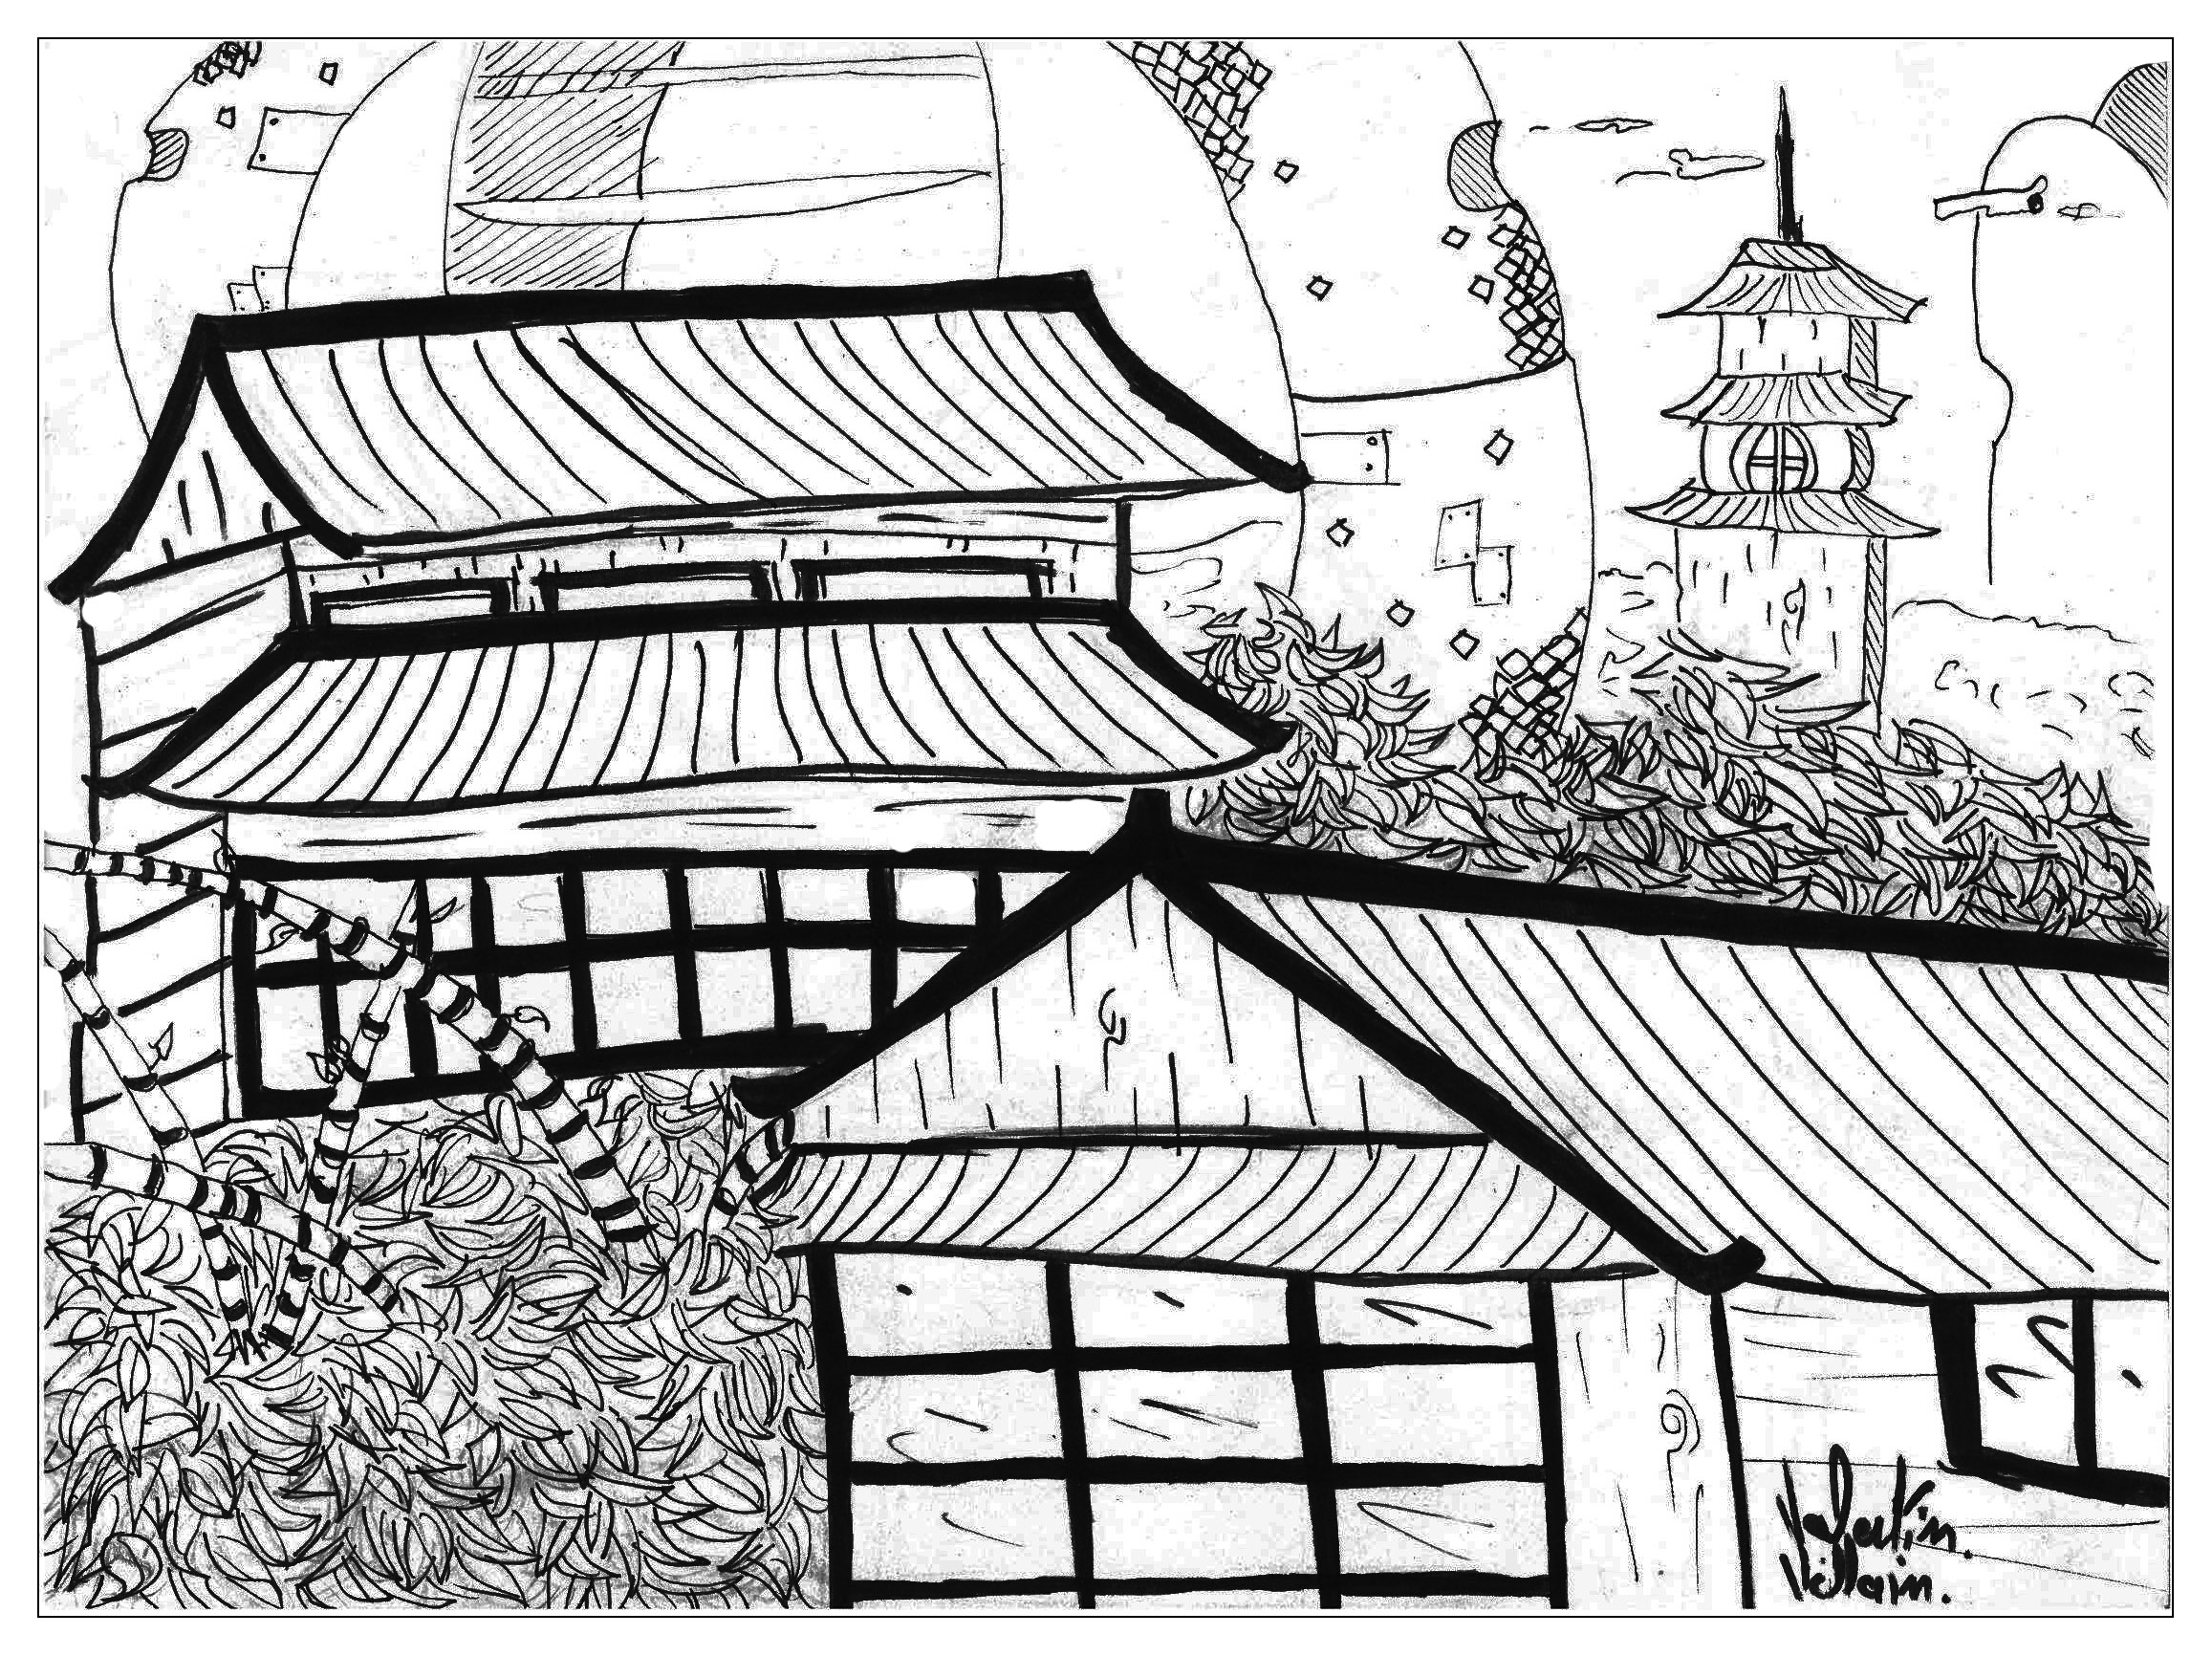 A great coloring page on the Japan theme by Valentin